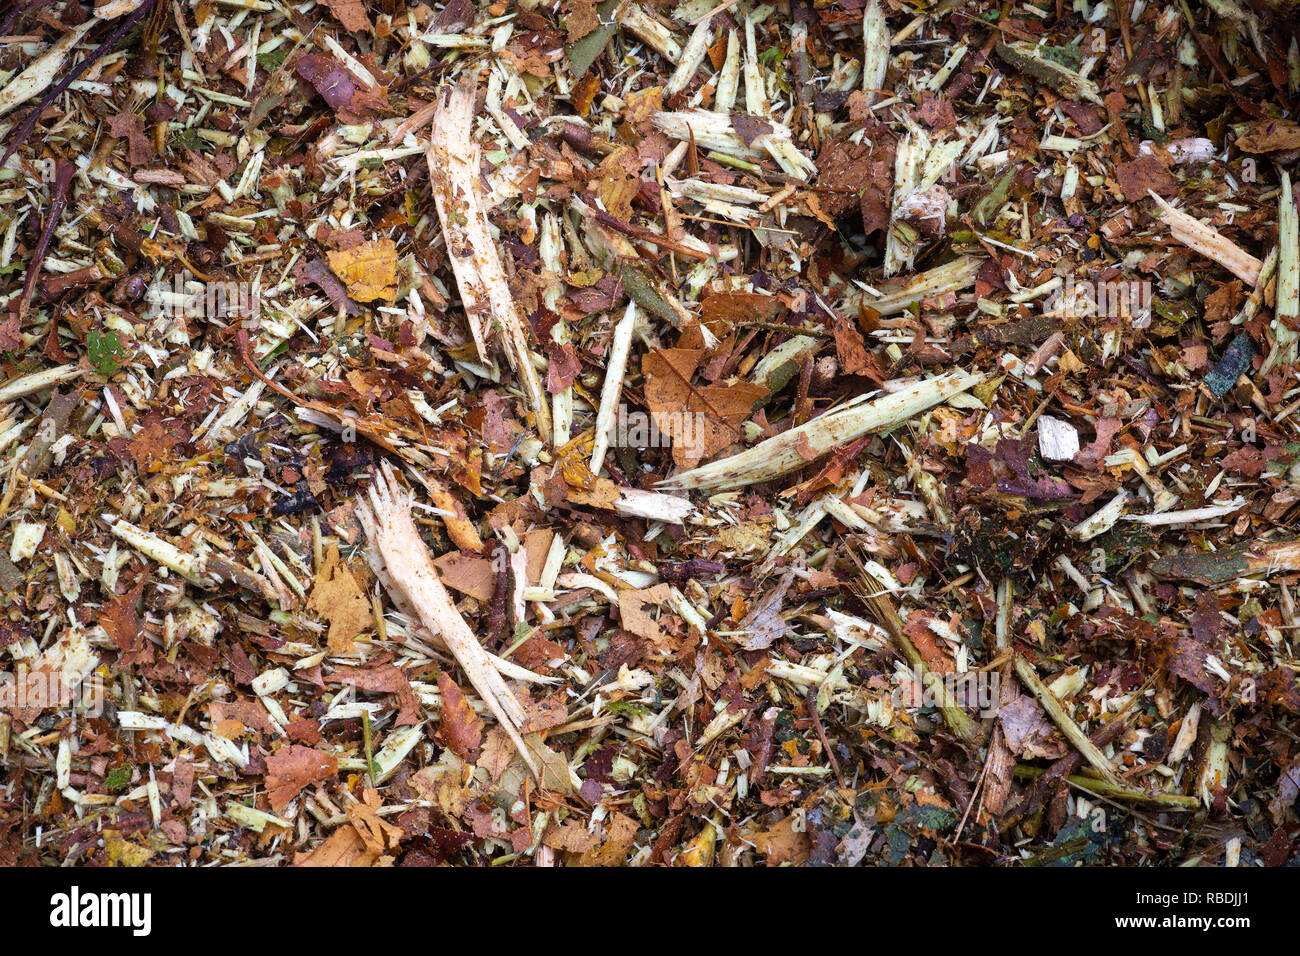 A close picture of a ramial chipped wood (RCW) heap. Used as mulch, those woodchips serve to reinstate the soil biological activity. - Stock Image